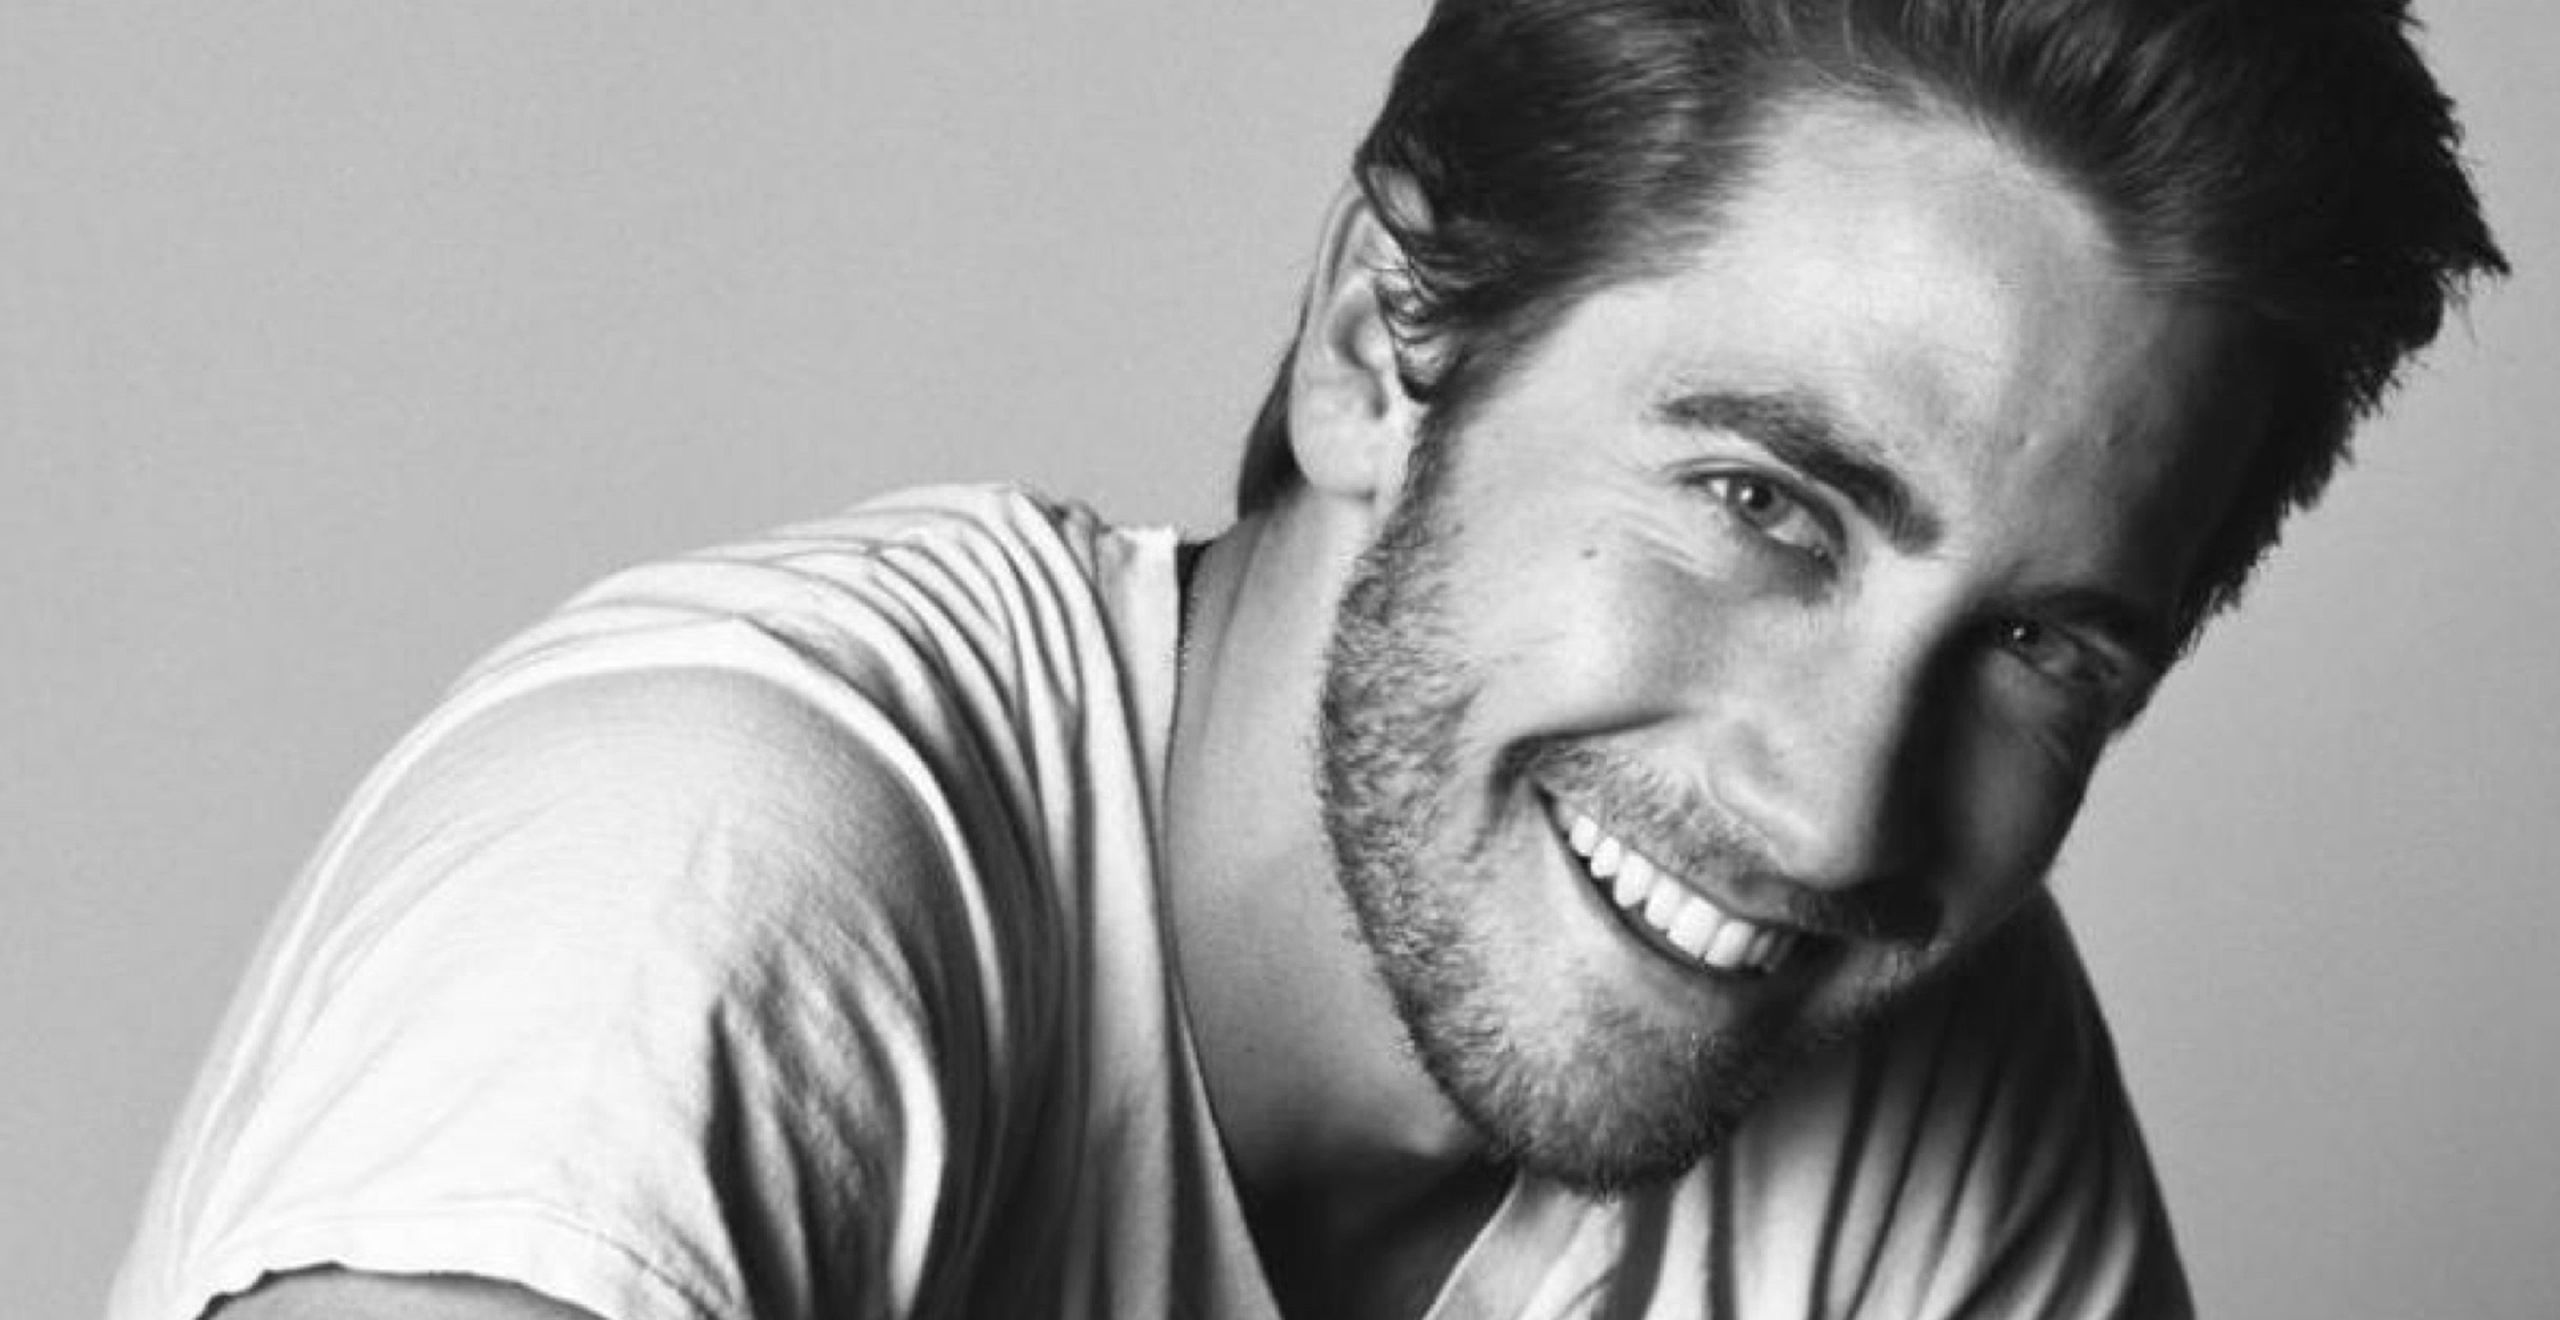 Jake Gyllenhaal Wallpaper 5   2560 X 1320 stmednet 2560x1320